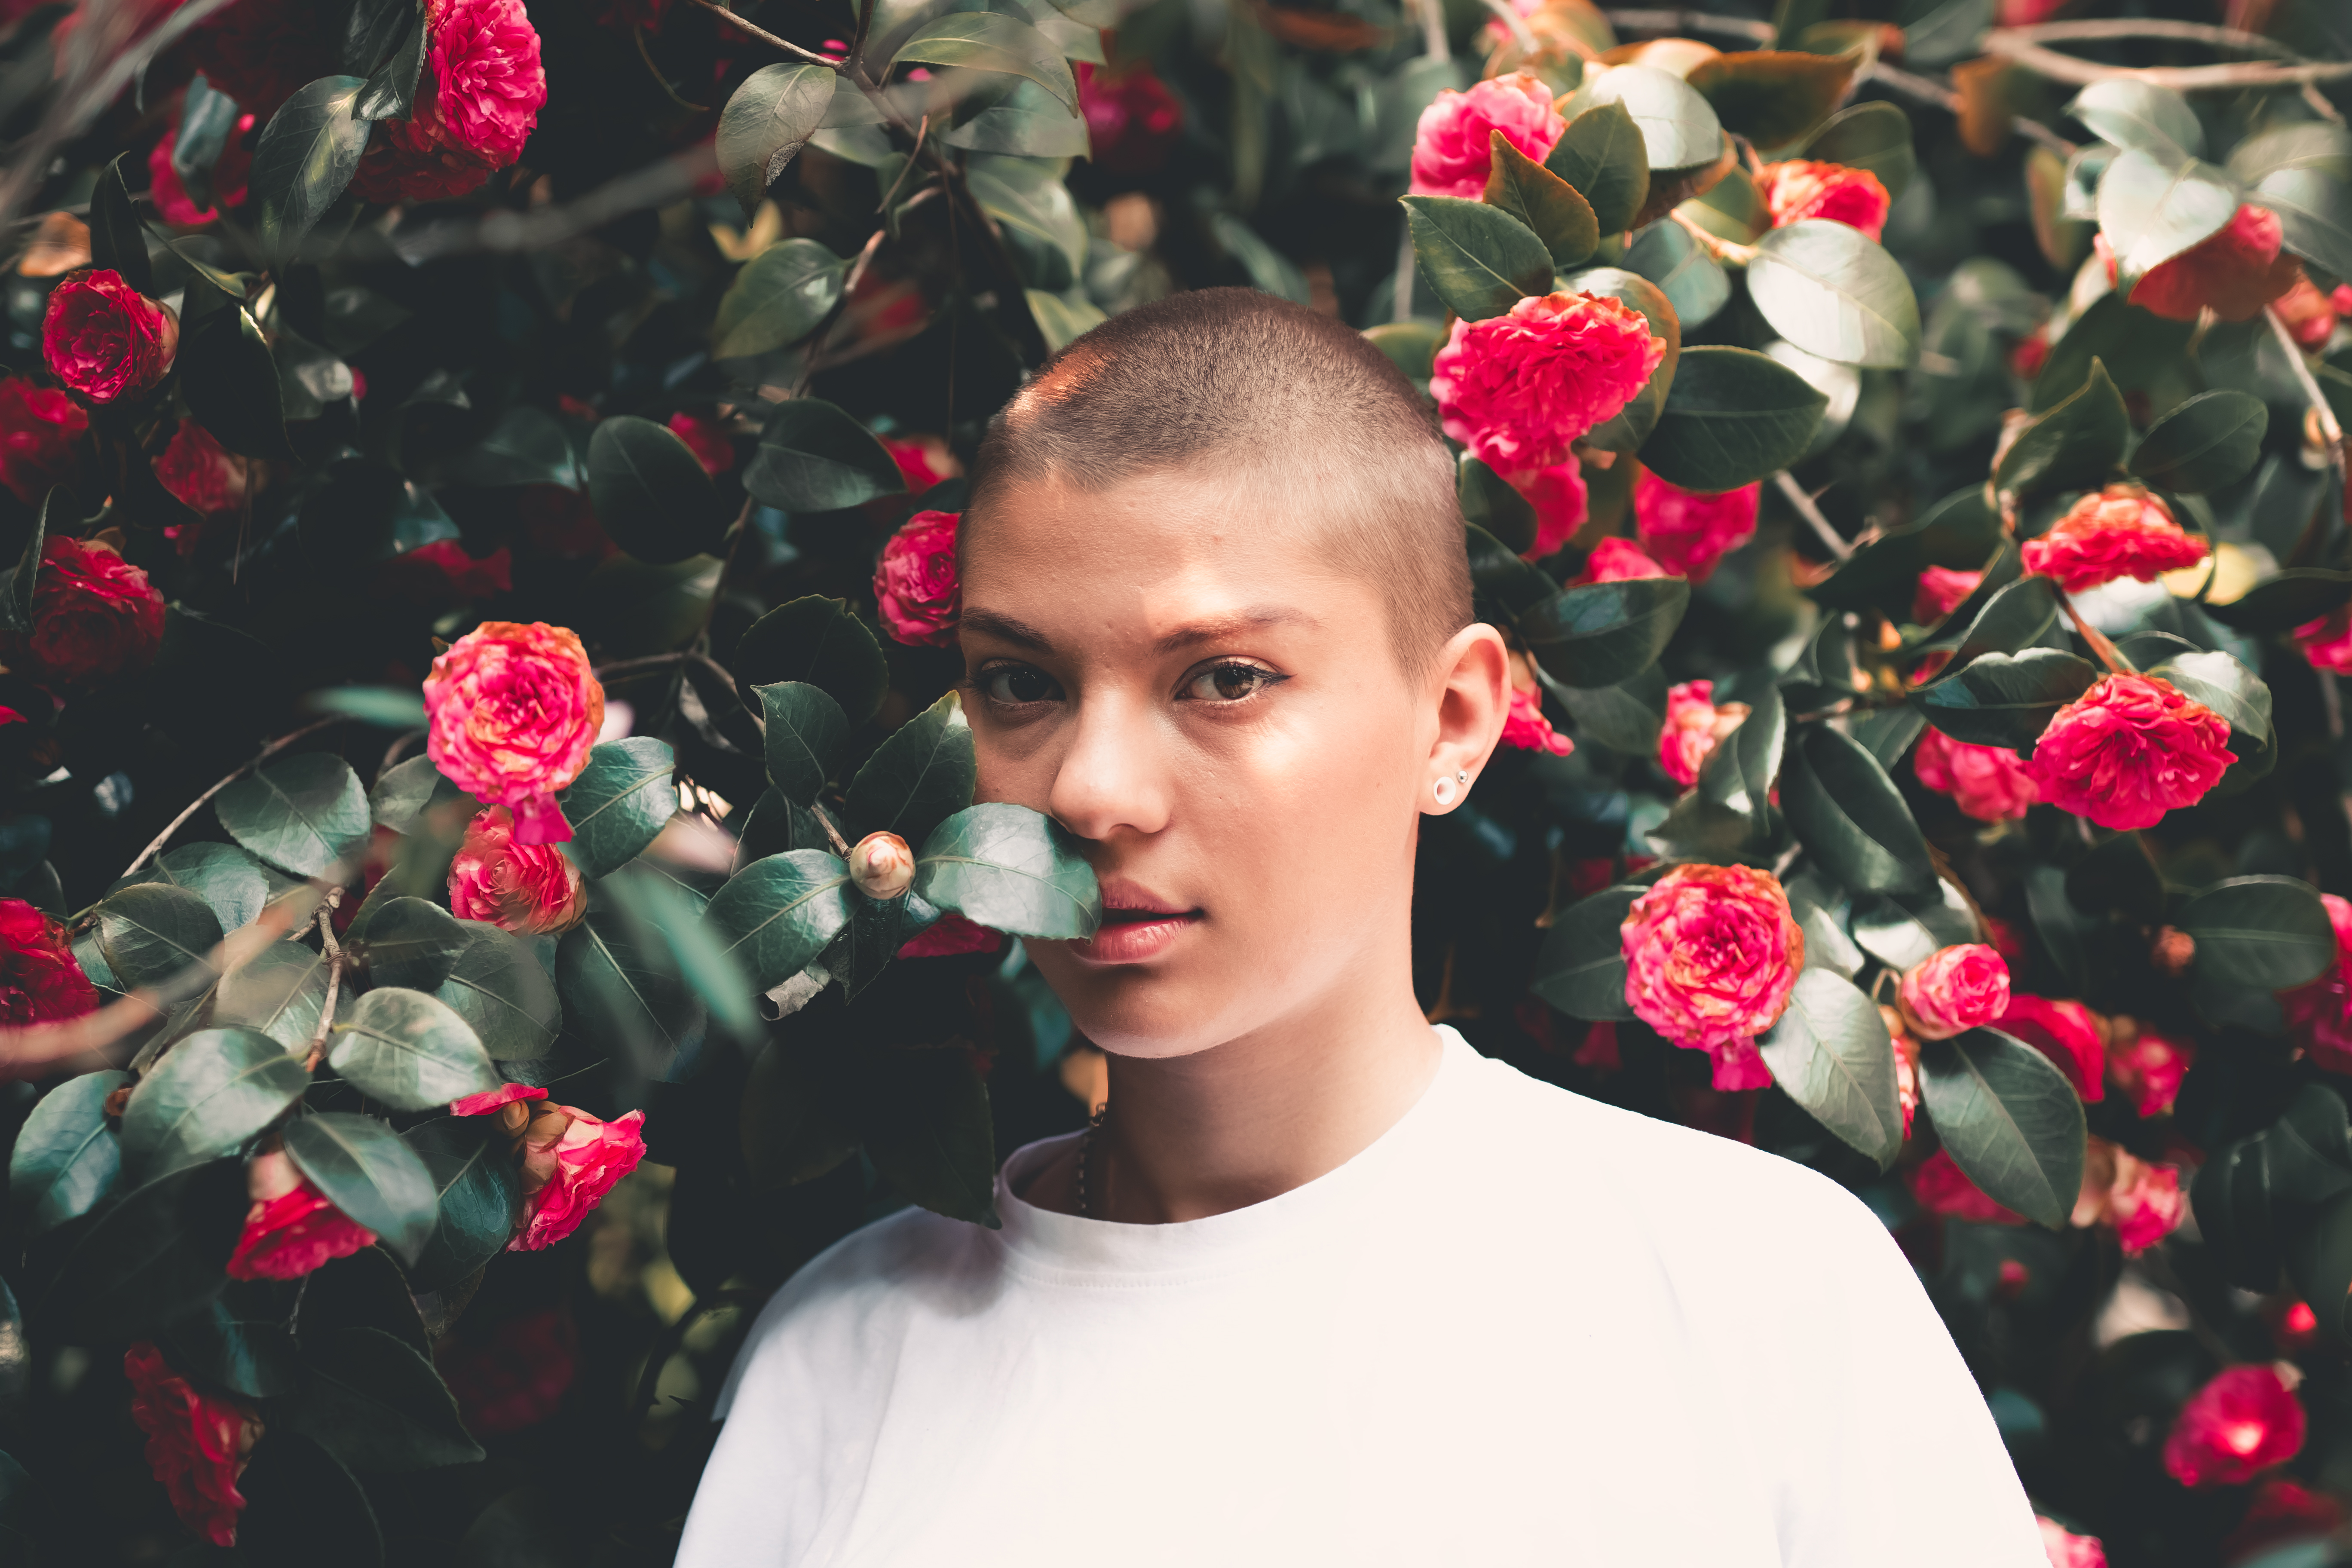 photo of bald woman in white t shirt standing beside red flowers